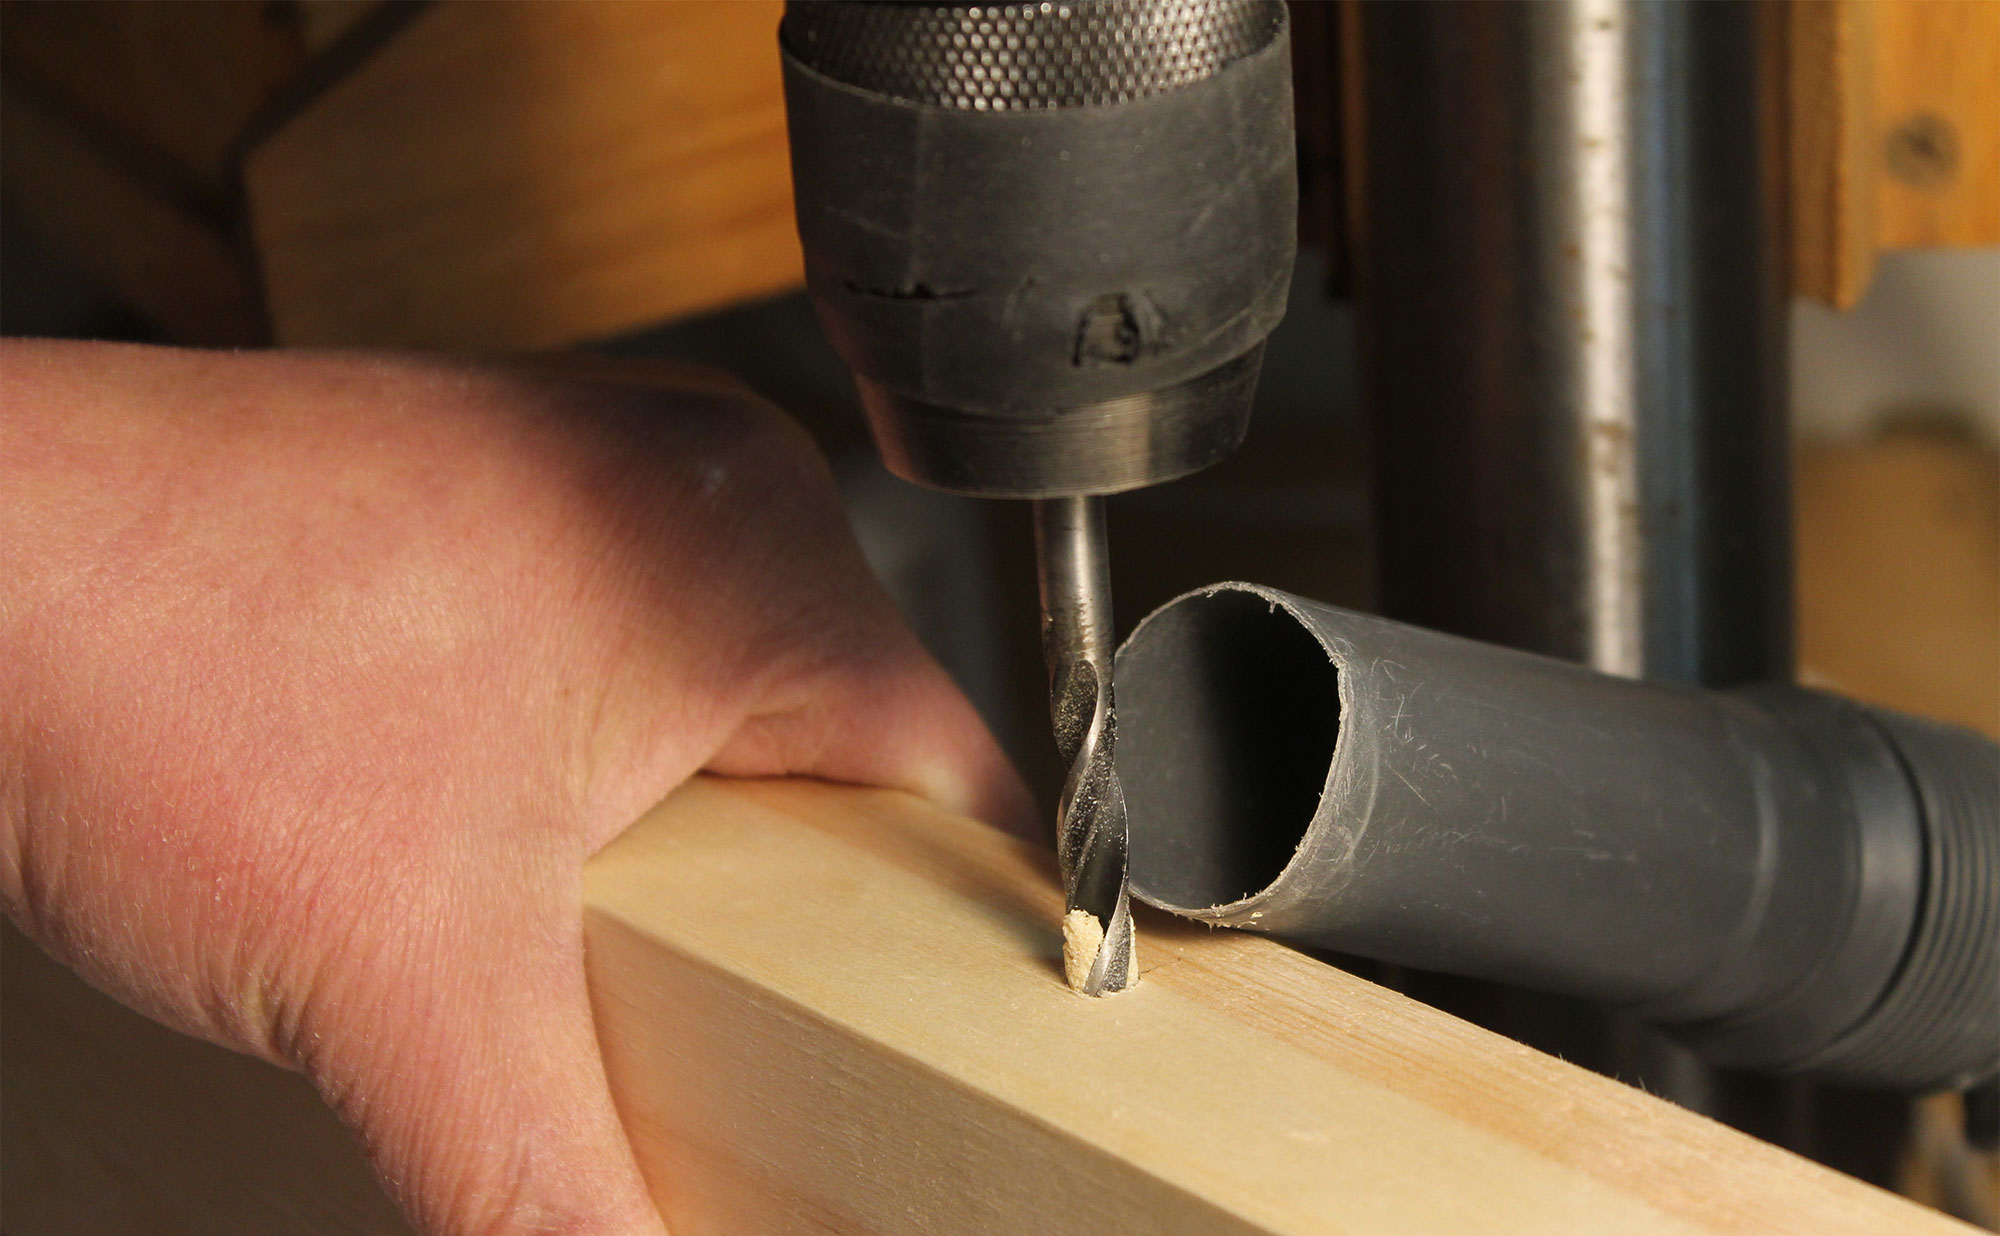 Drilling the center mounting hole.